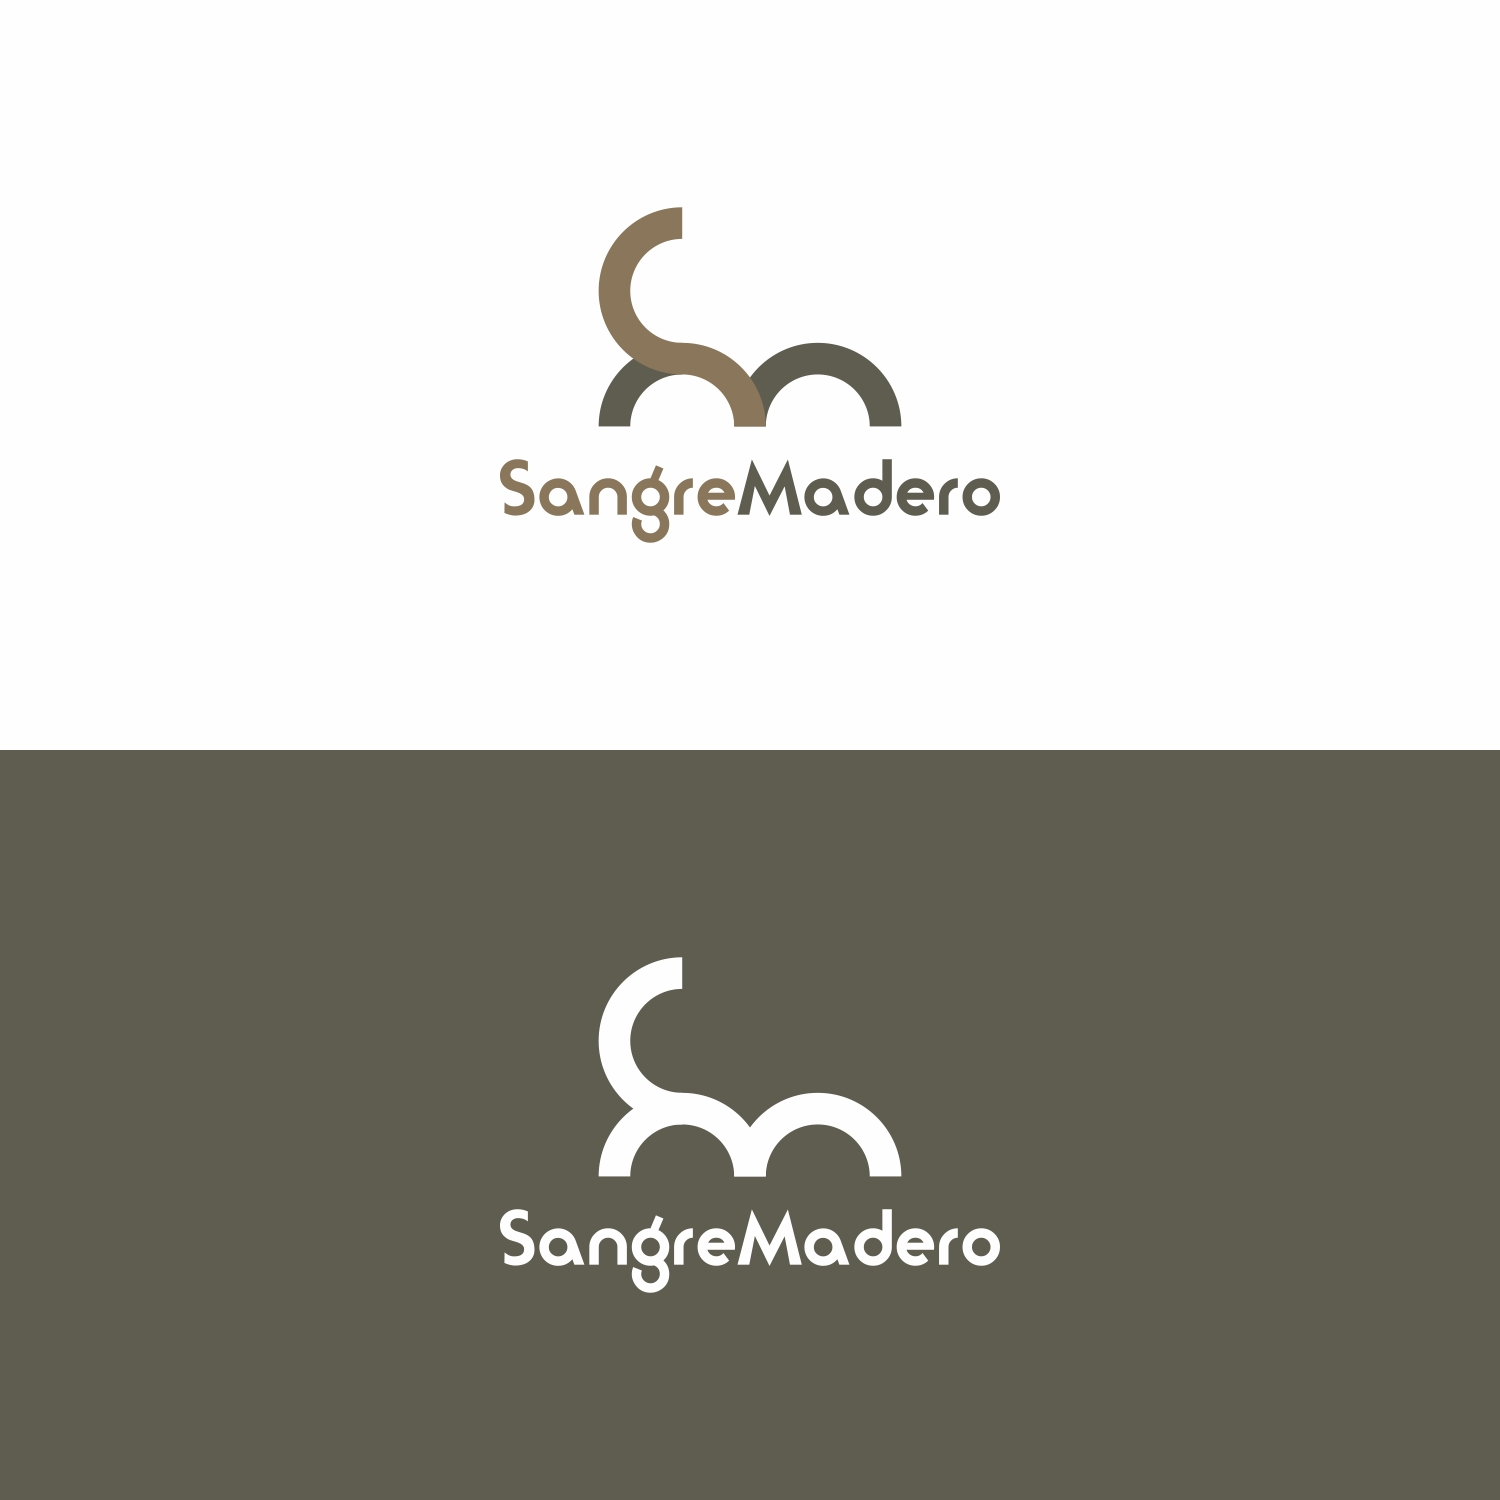 Logo design by wisnu pramono jati for this project design 11187645